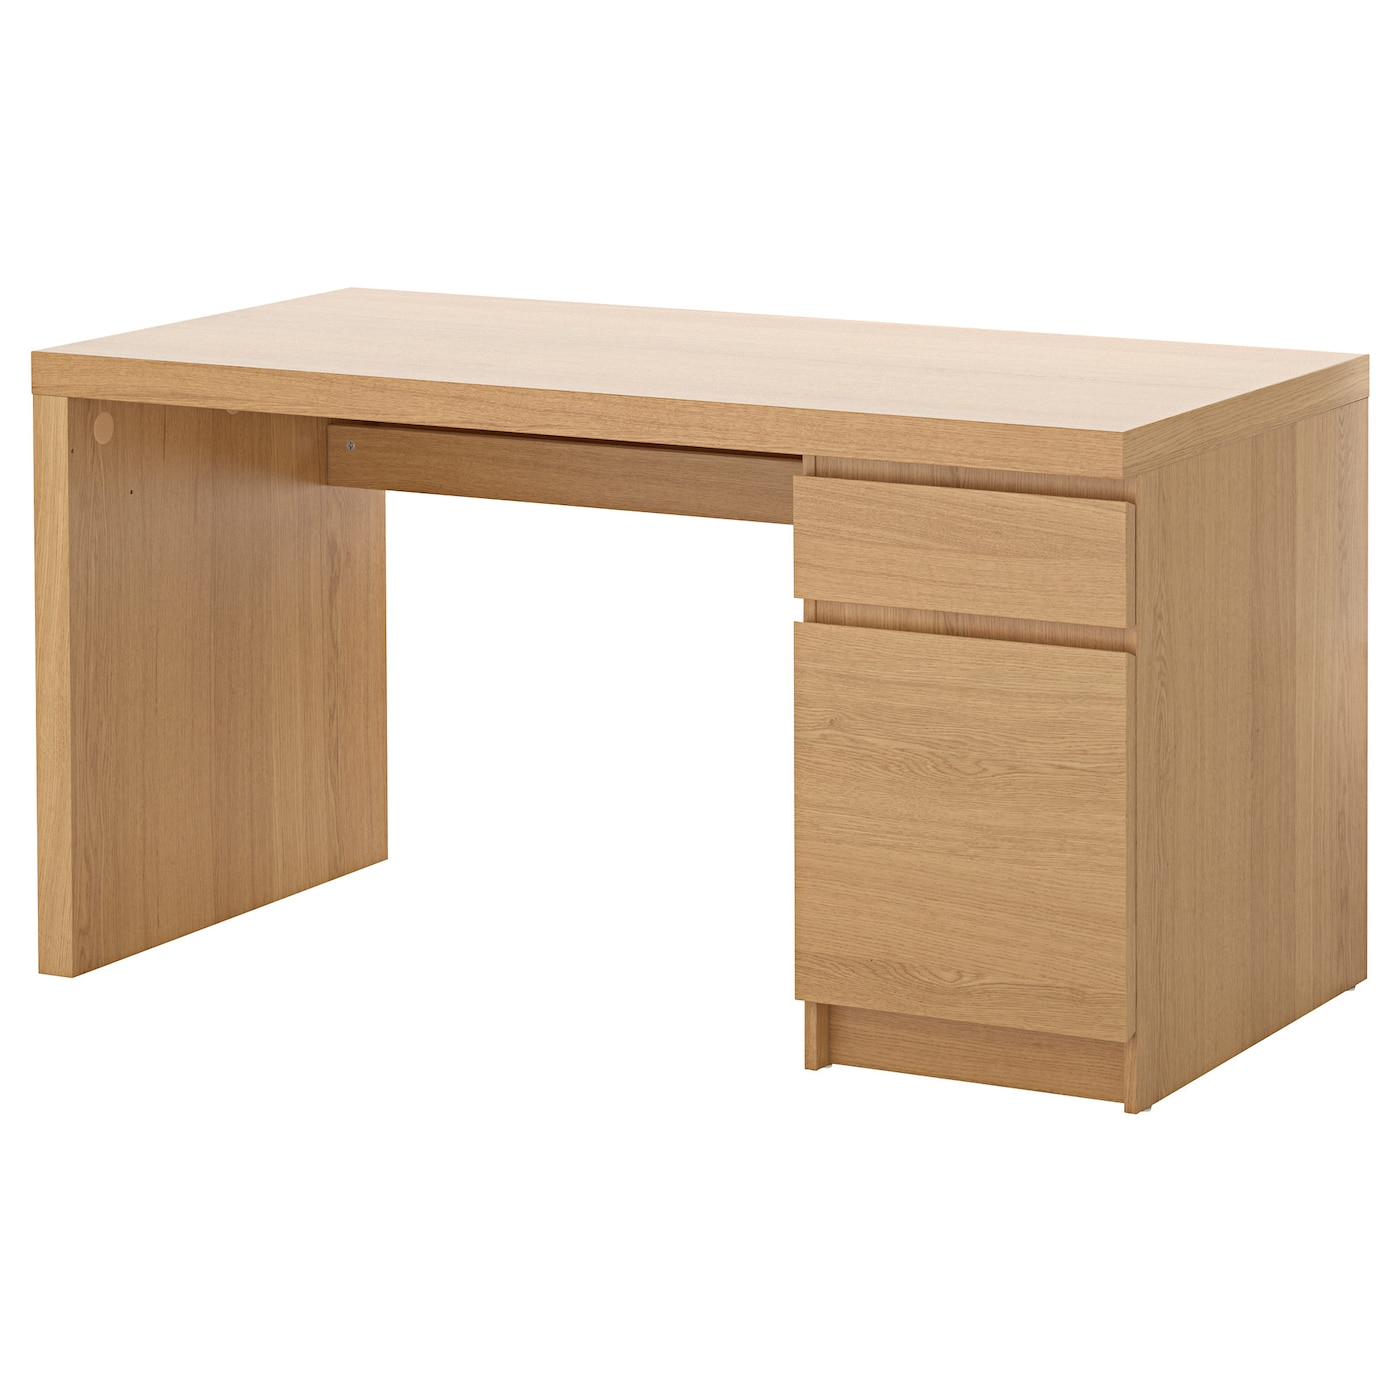 Malm desk oak veneer 140x65 cm ikea for Ikea drawing desk